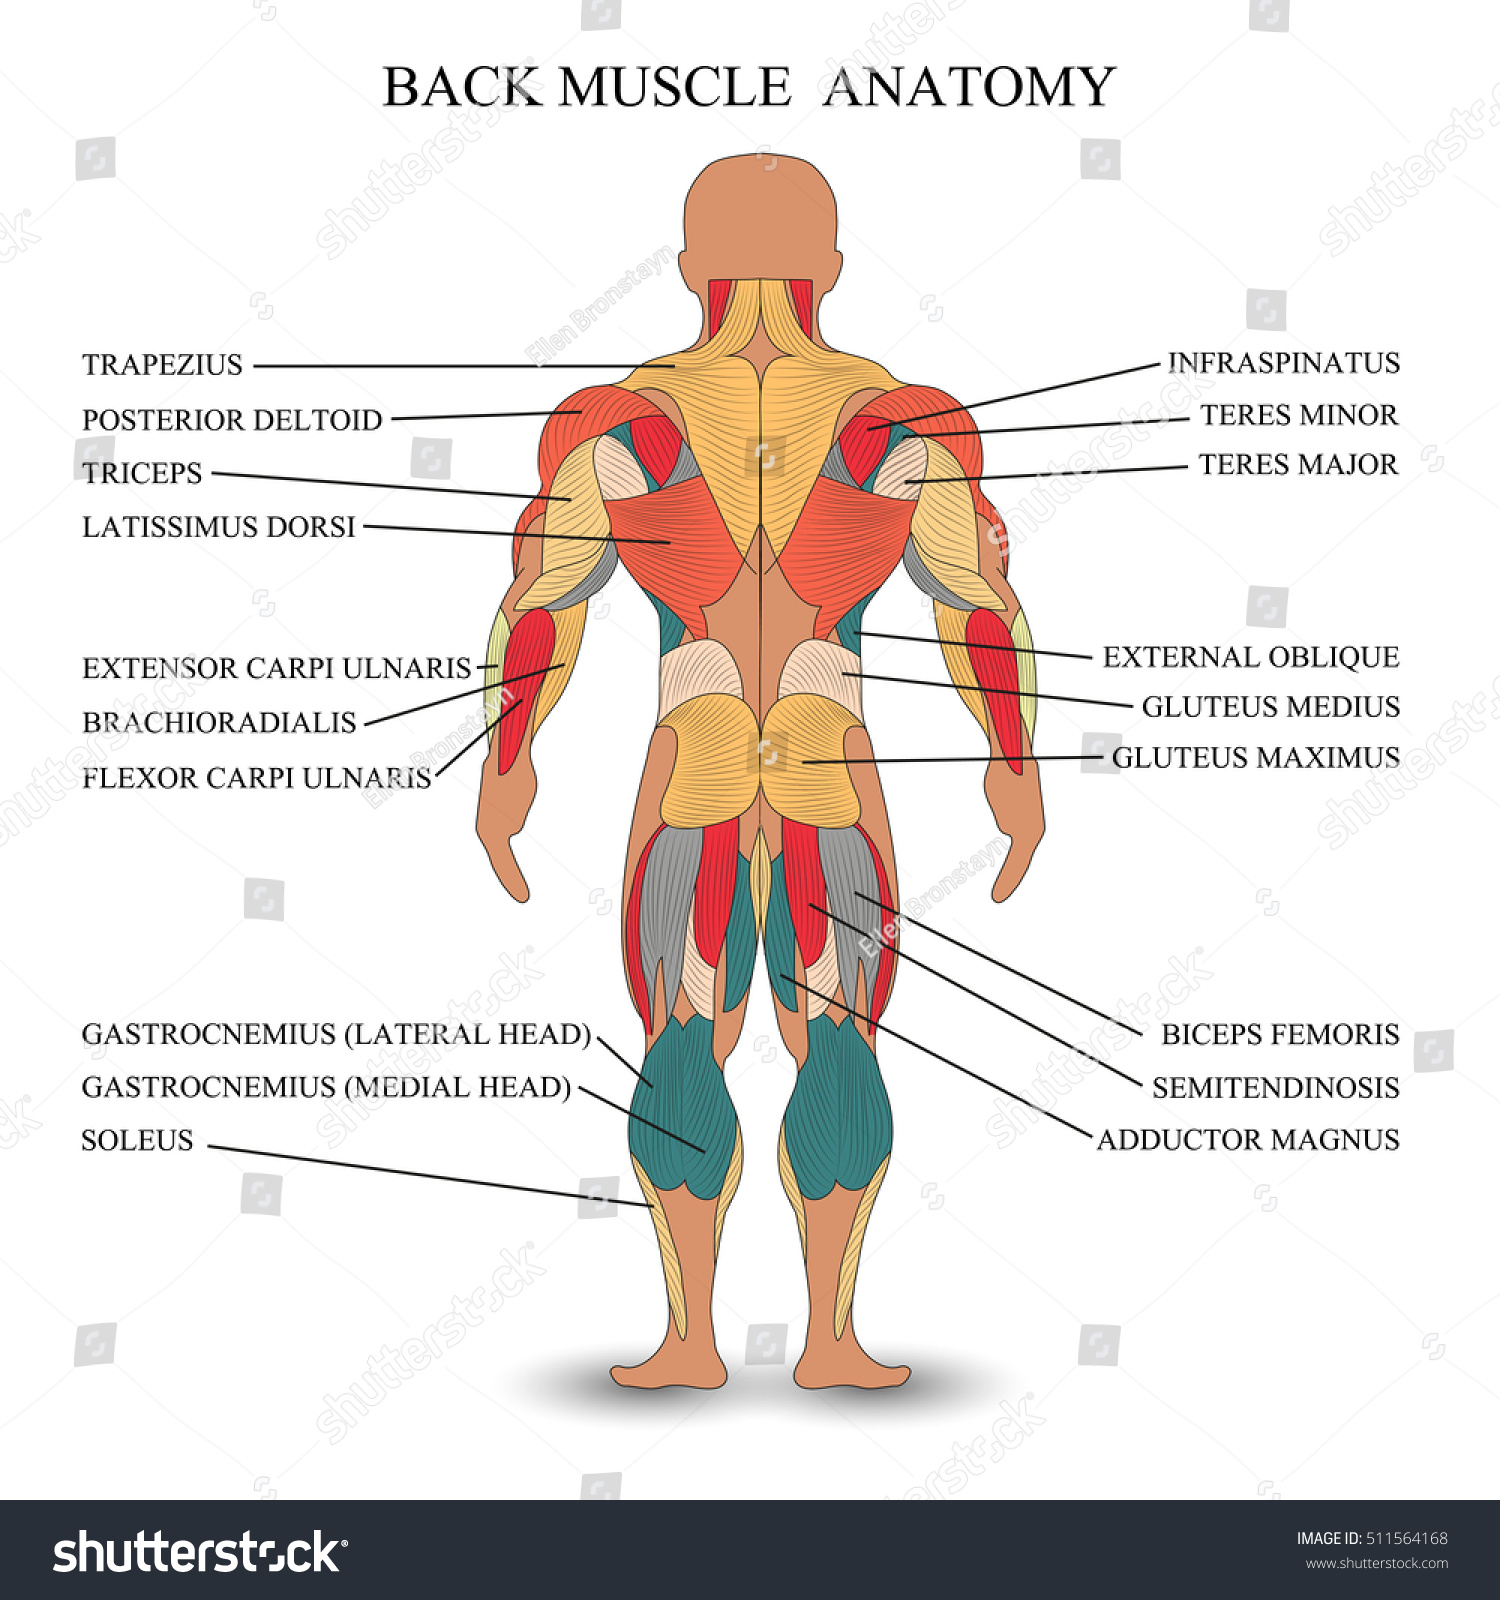 Anatomy human muscles back template medical em ilustrao stock anatomy of human muscles in the back a template for medical tutorial banner ccuart